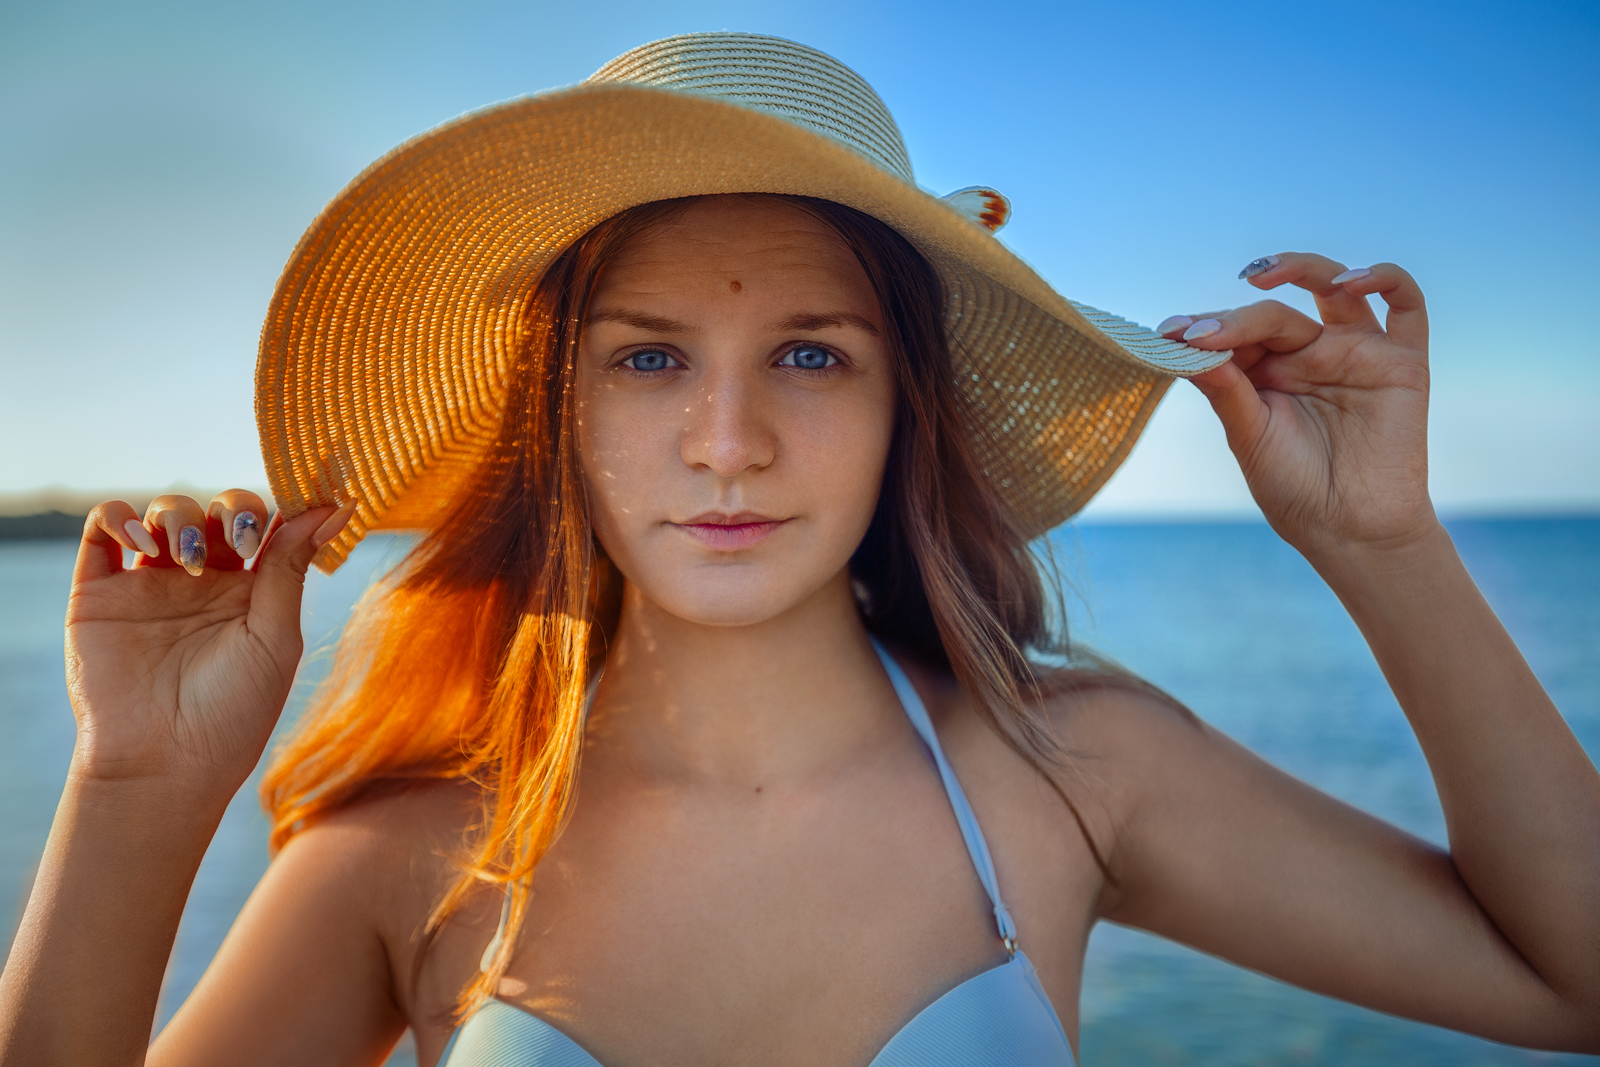 Summer vibe | Author didkich | PHOTO FORUM